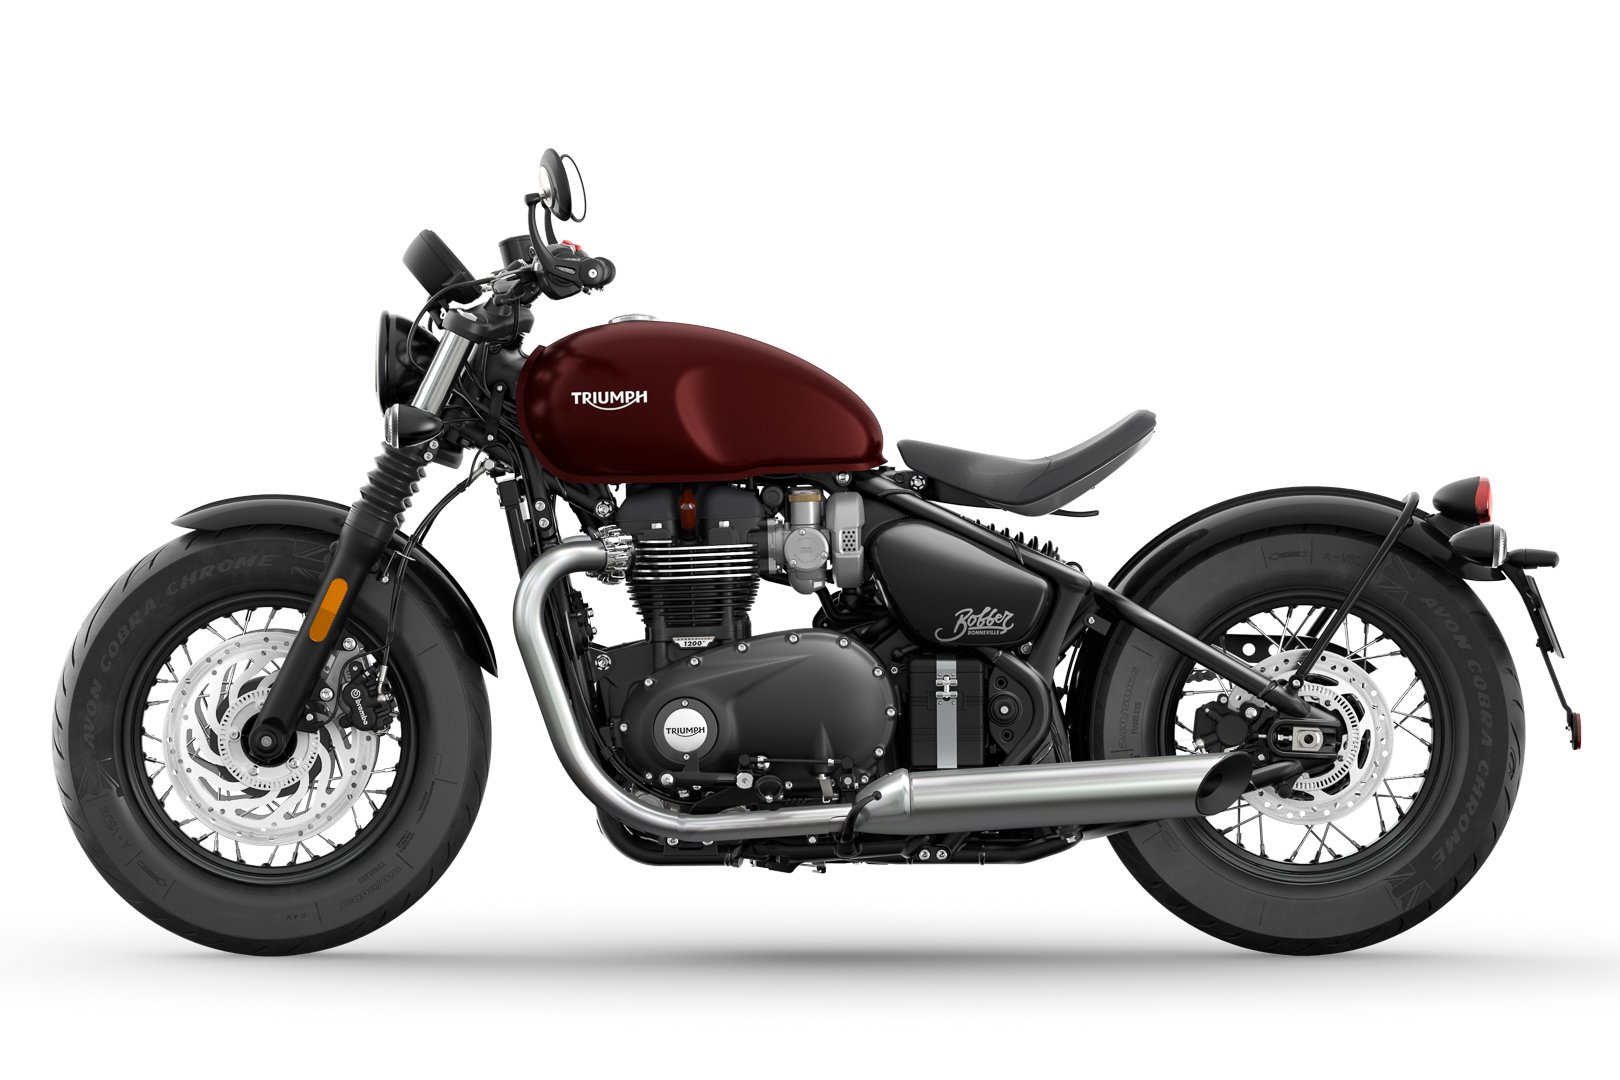 2022 Triumph Bonneville Bobber First Look: Price